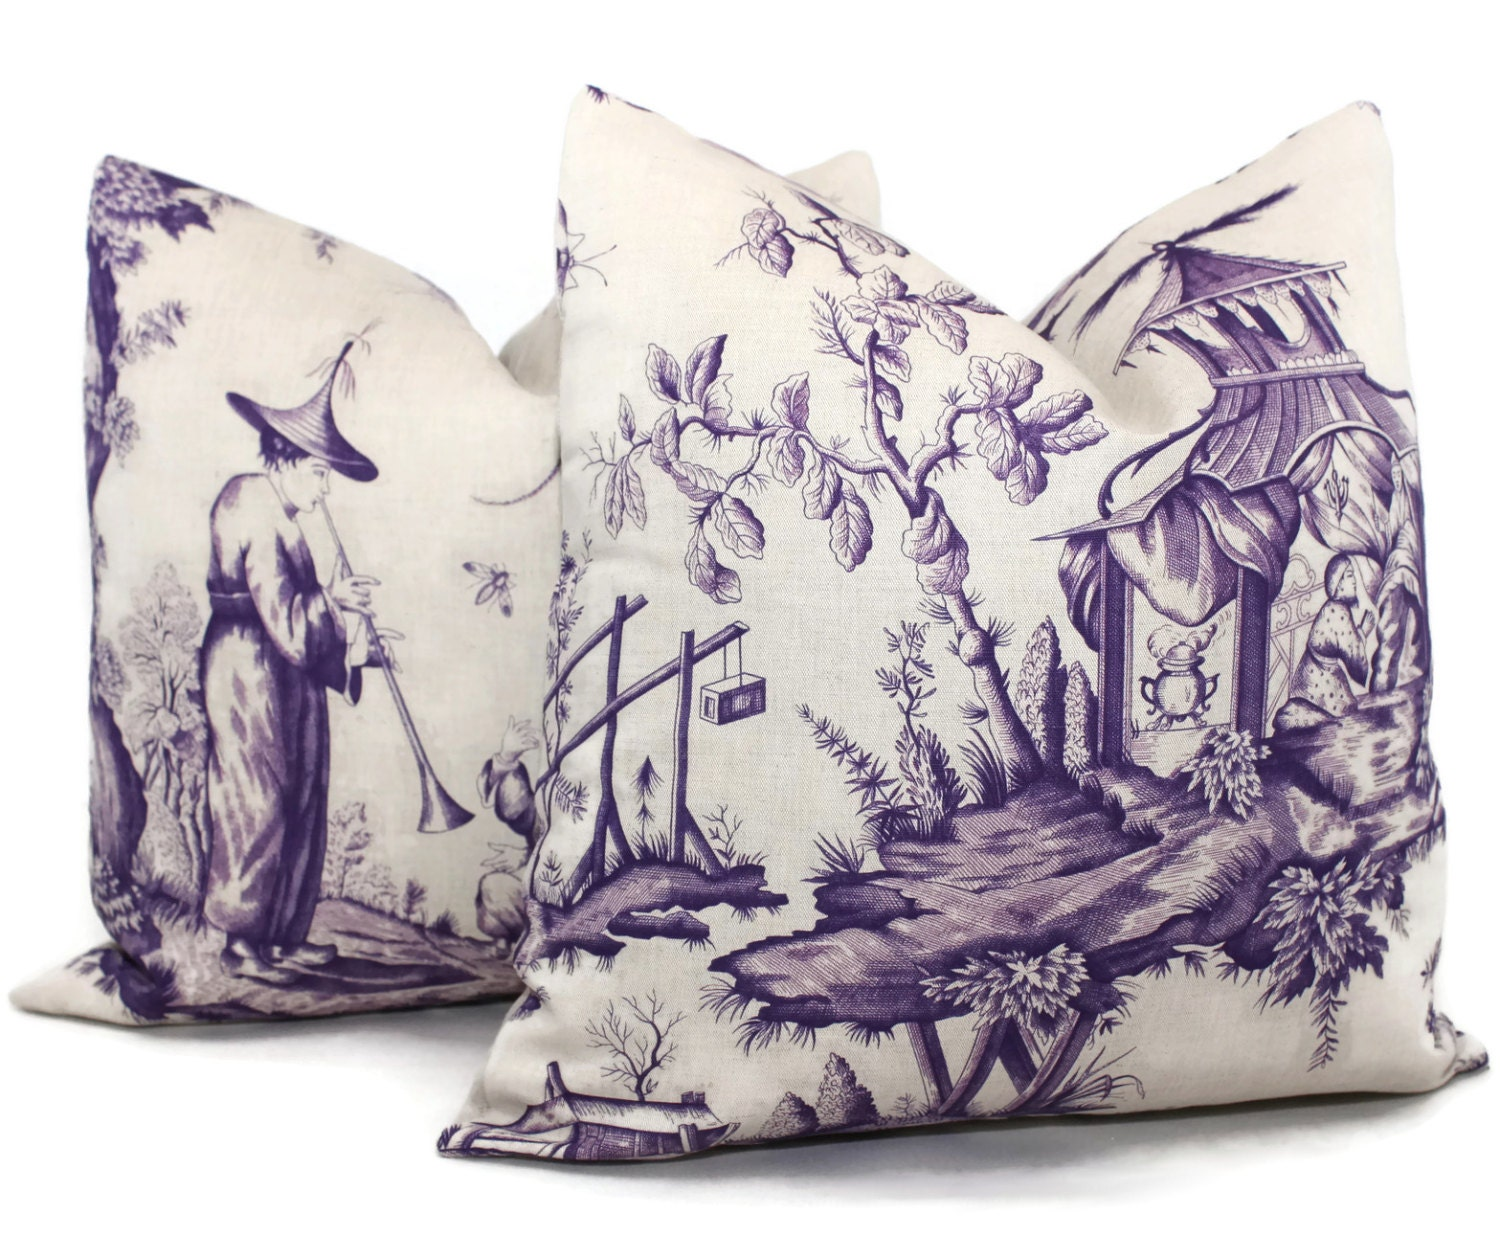 Iris shengyou toile decorative pillow cover 18x18 20x20 - Toile decorative murale ...